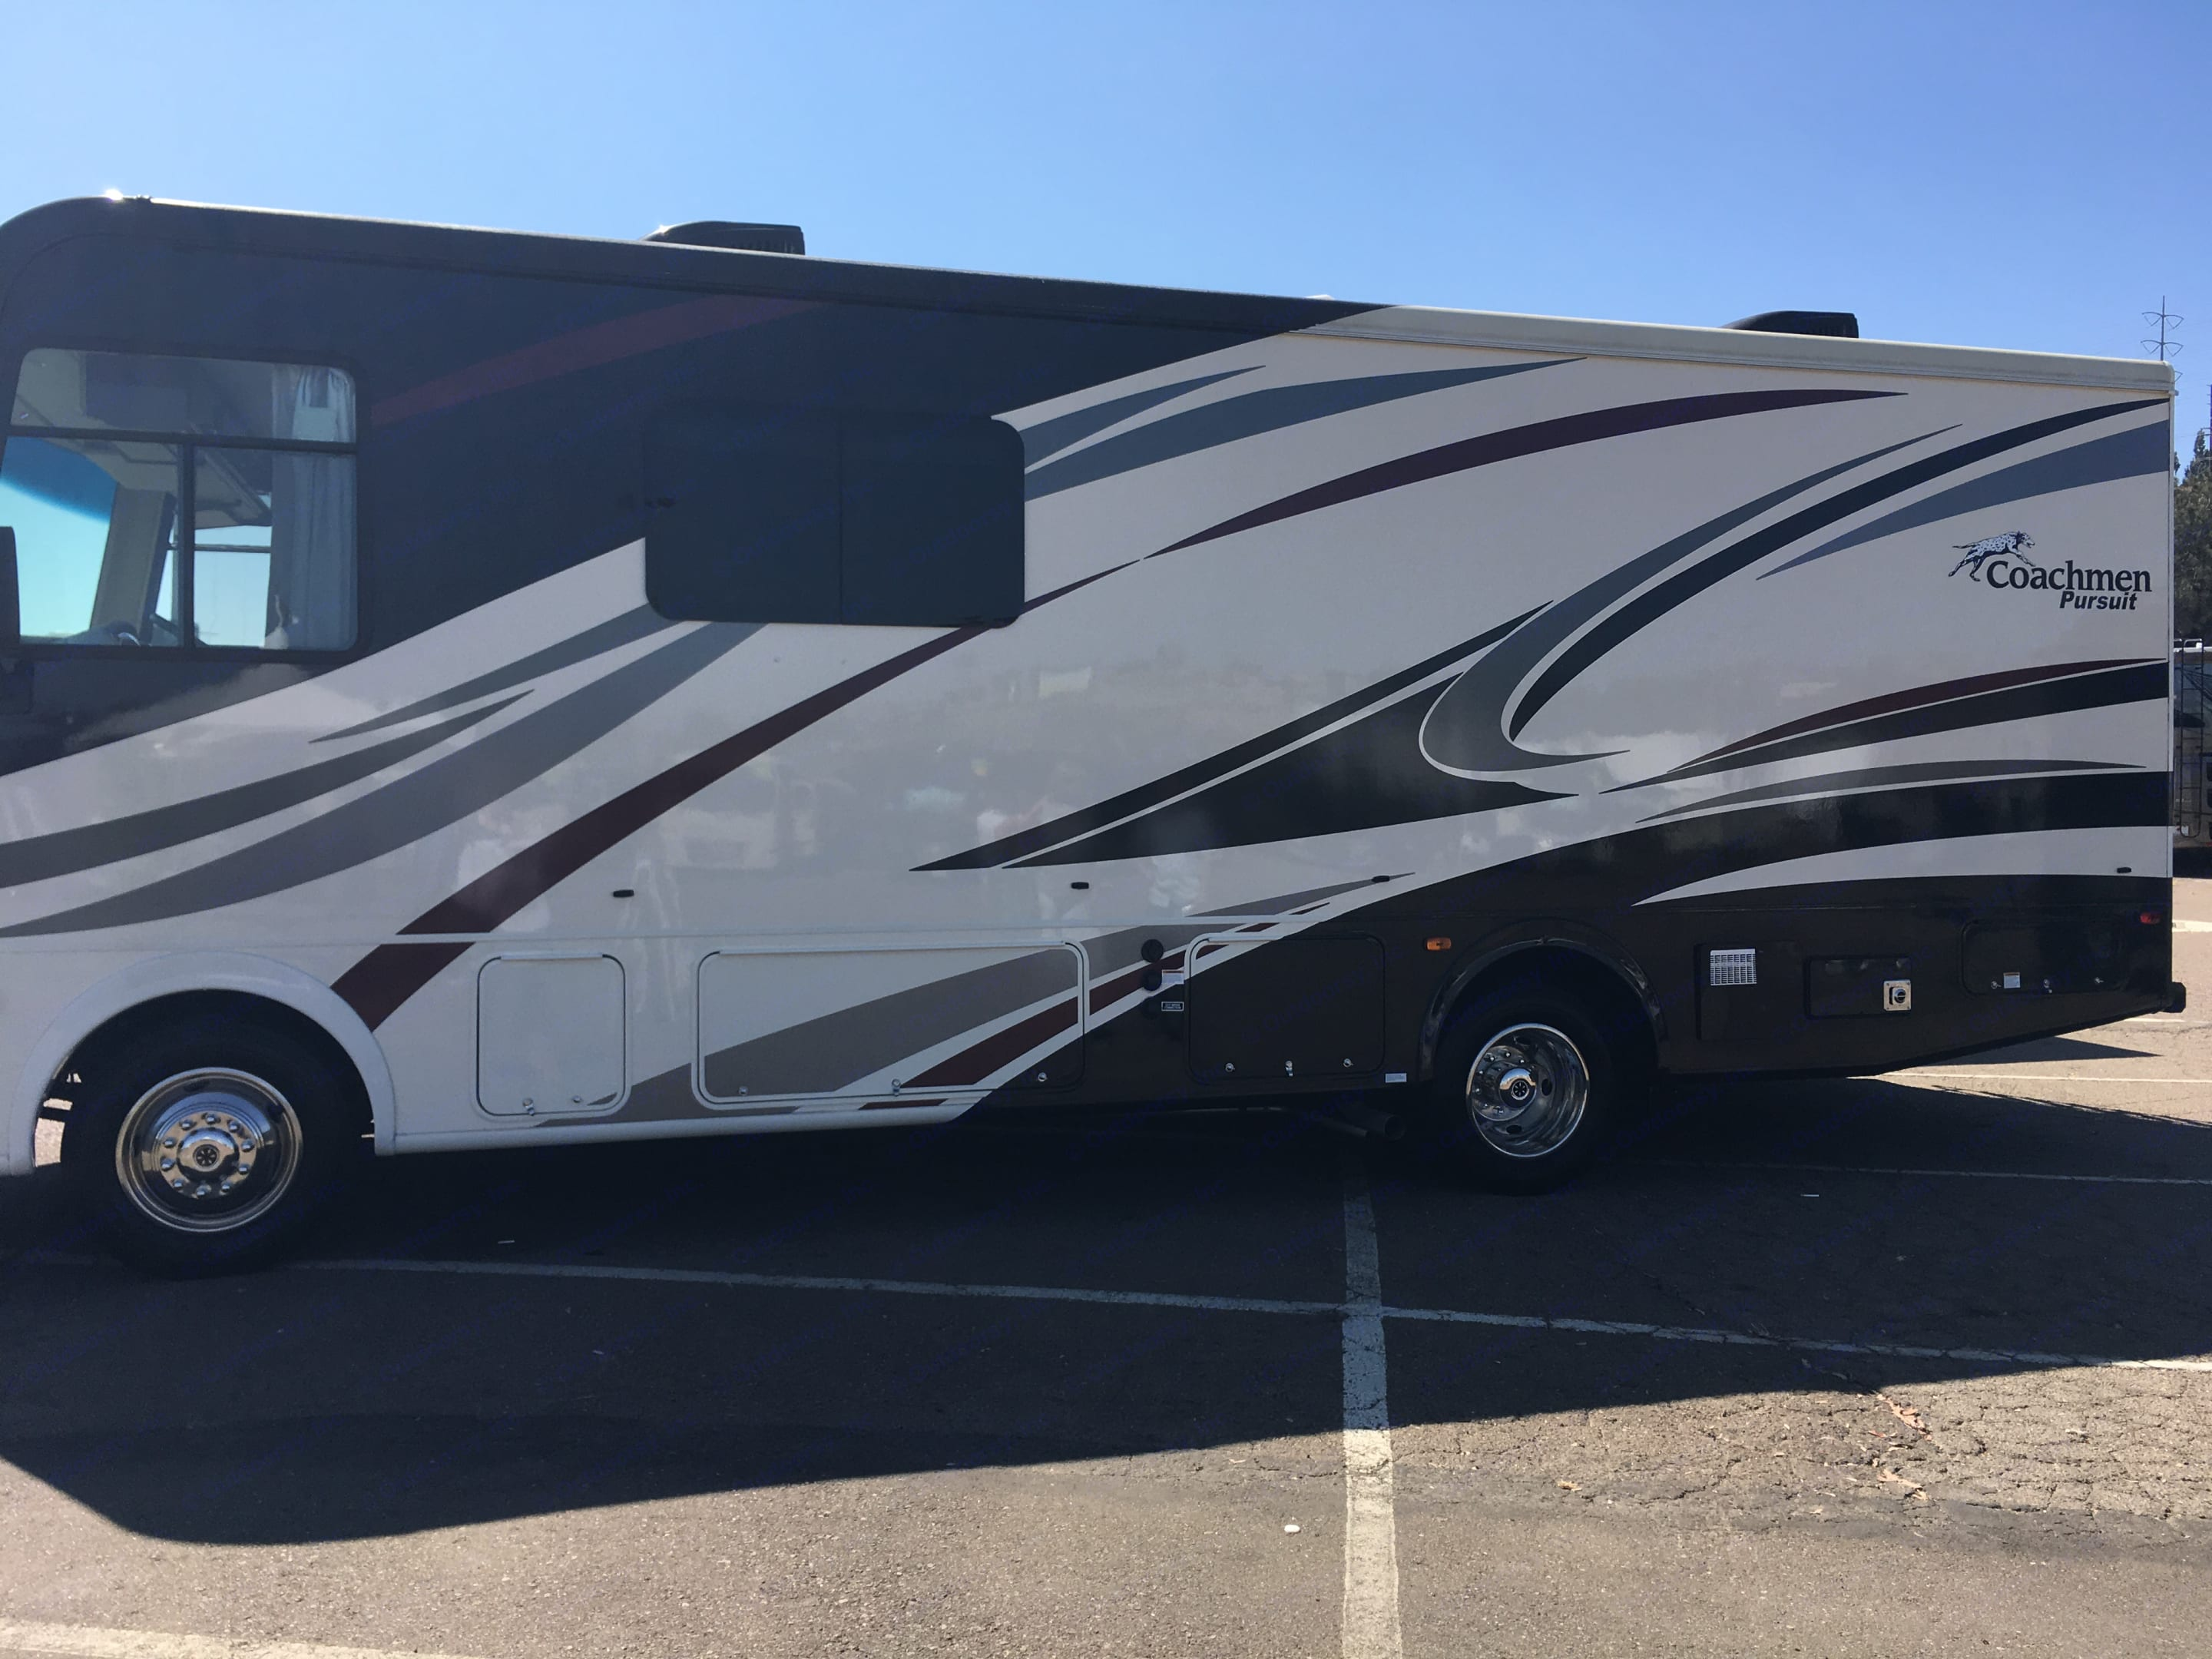 Brand New! Be the first to rent this RV! This coach is easy to drive and park because of its 27 foot length and fantastic visibility.  Feels huge inside with a walk around king bed and tons of storage, mirrored wardrobes and a sliding real solid wood door that locks in the bedroom. This coach feels luxurious in every way. Can be booked fully equipped  for an extra $150 with ever cooking gadget and utensil you could ask for, high thread count sheets, down comforters and designer linens.. Great selection of DVD's and books, stocked with magazines and games to entertain you on board. Great sound system. Watch your movie outdoor while you enjoy your camp fire!. Coachmen Pursuit 2017